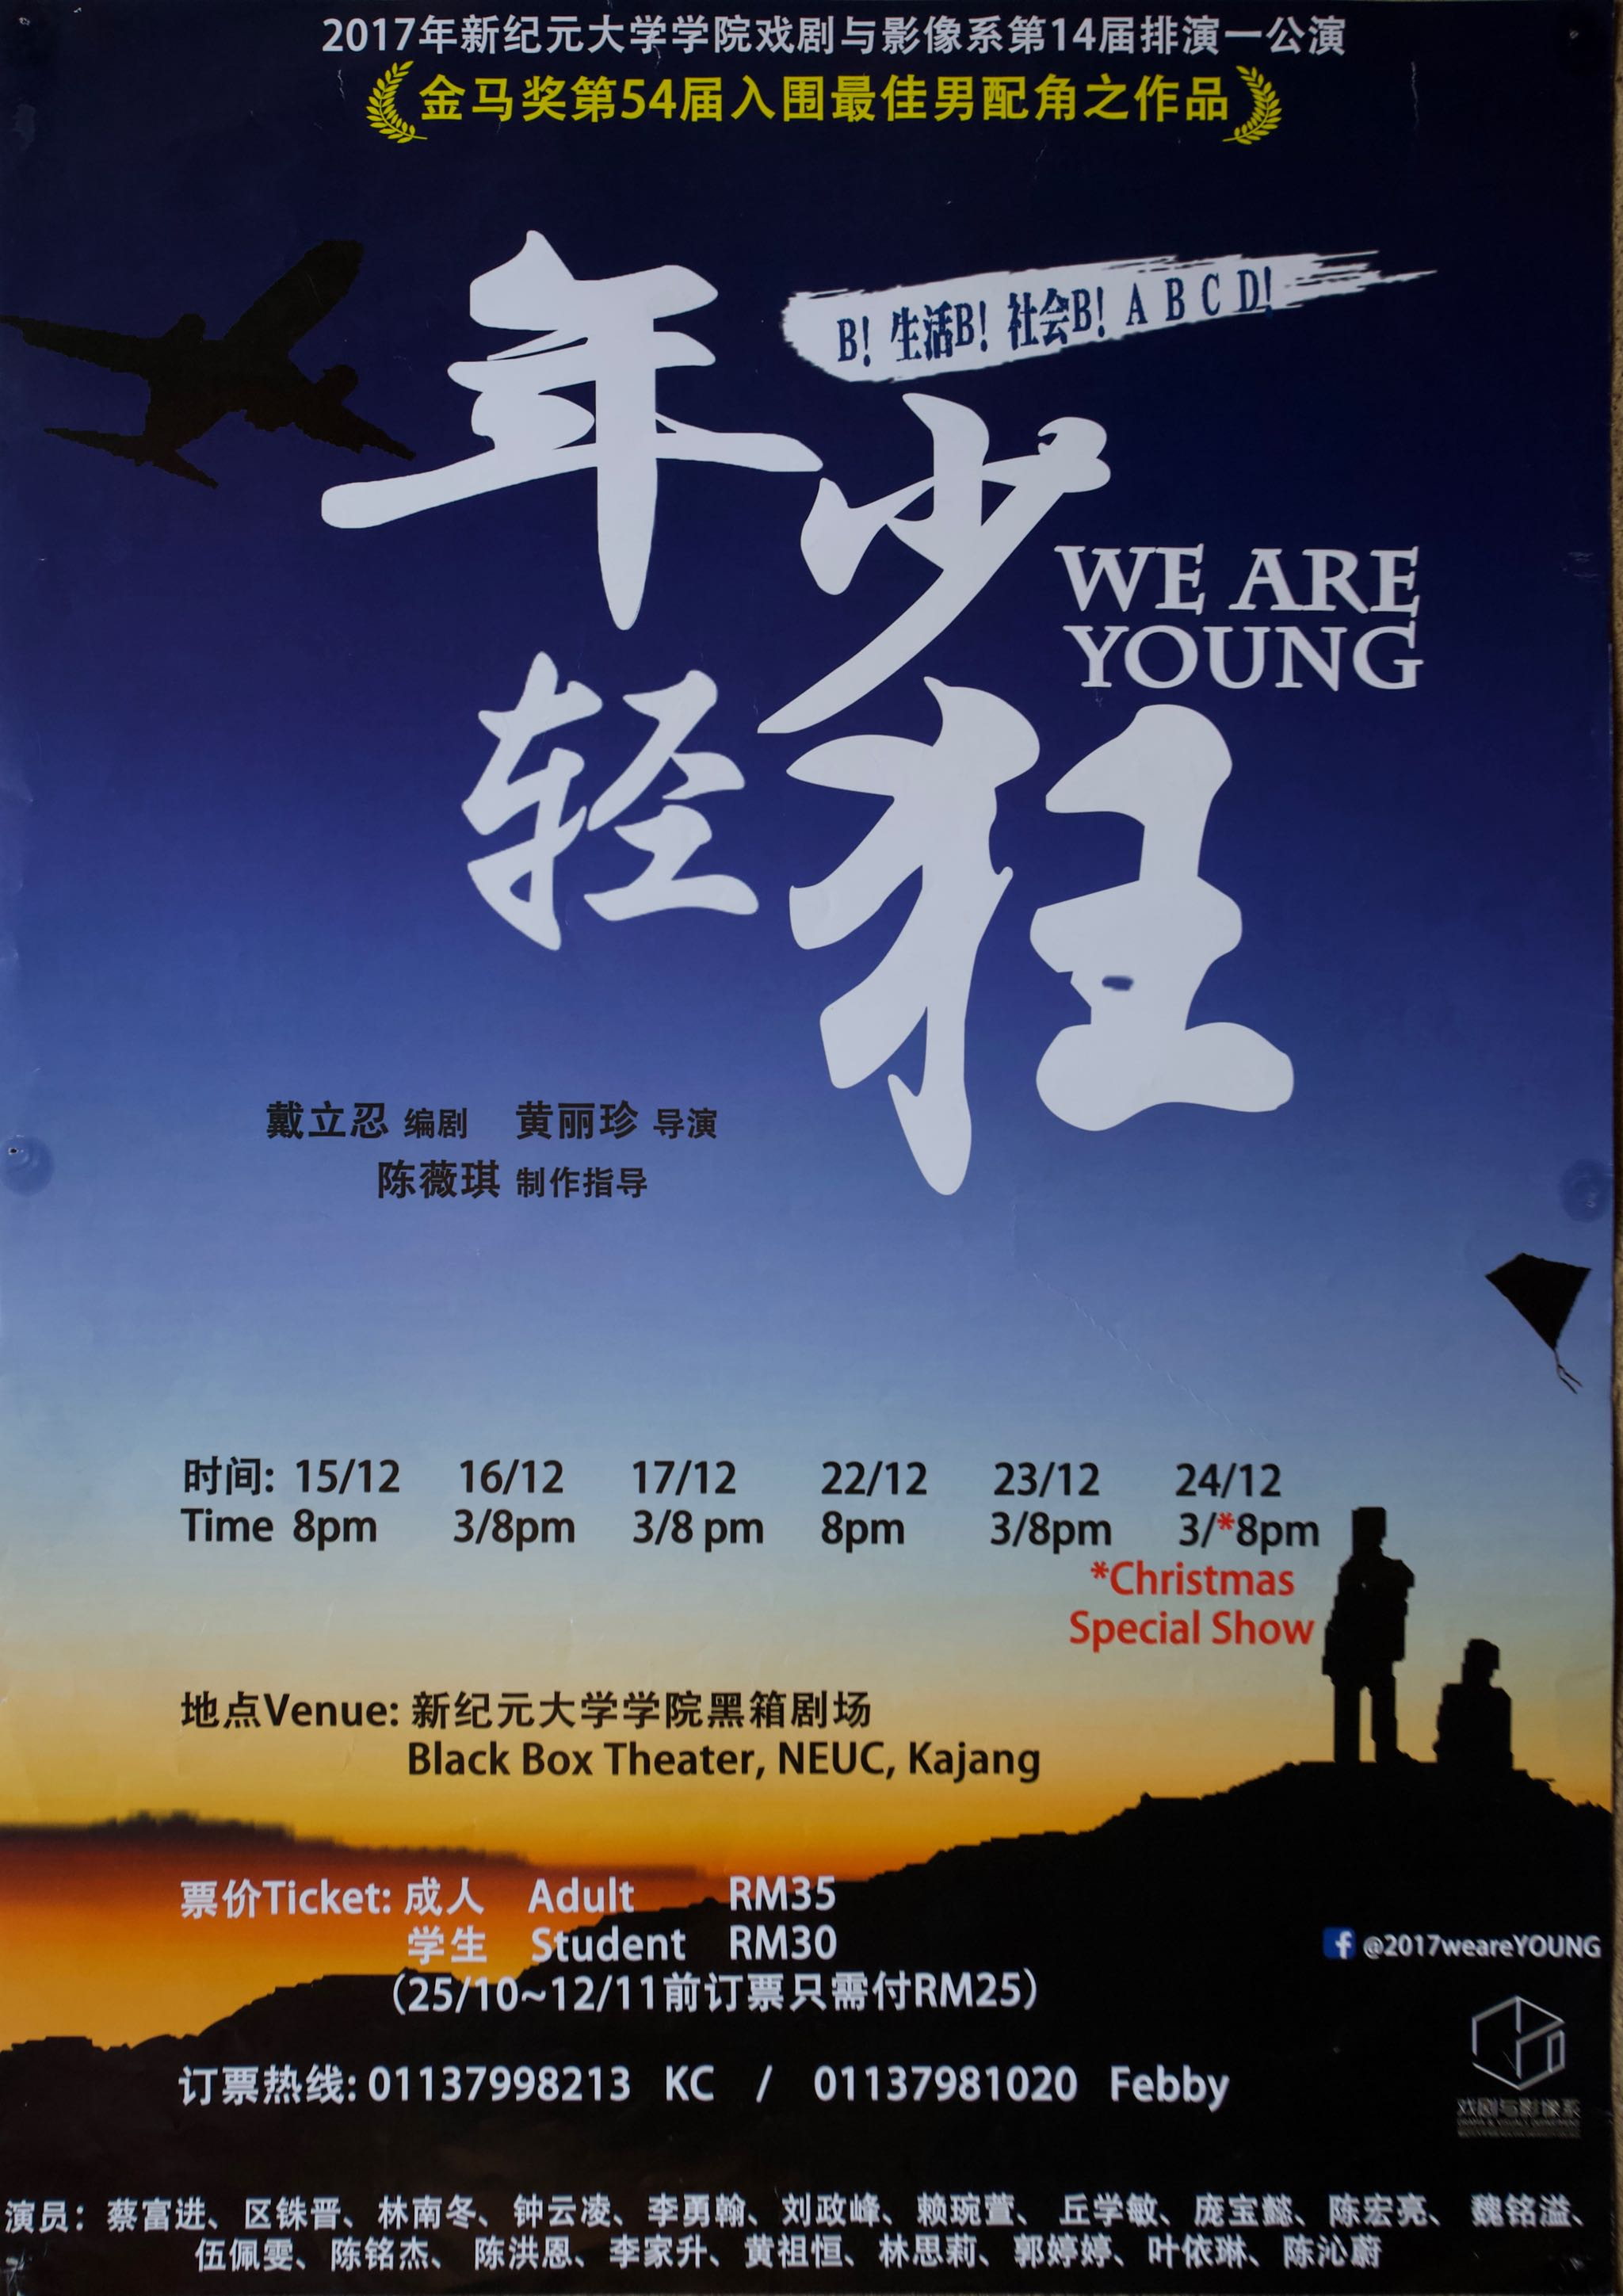 2017 You Are Young Poster